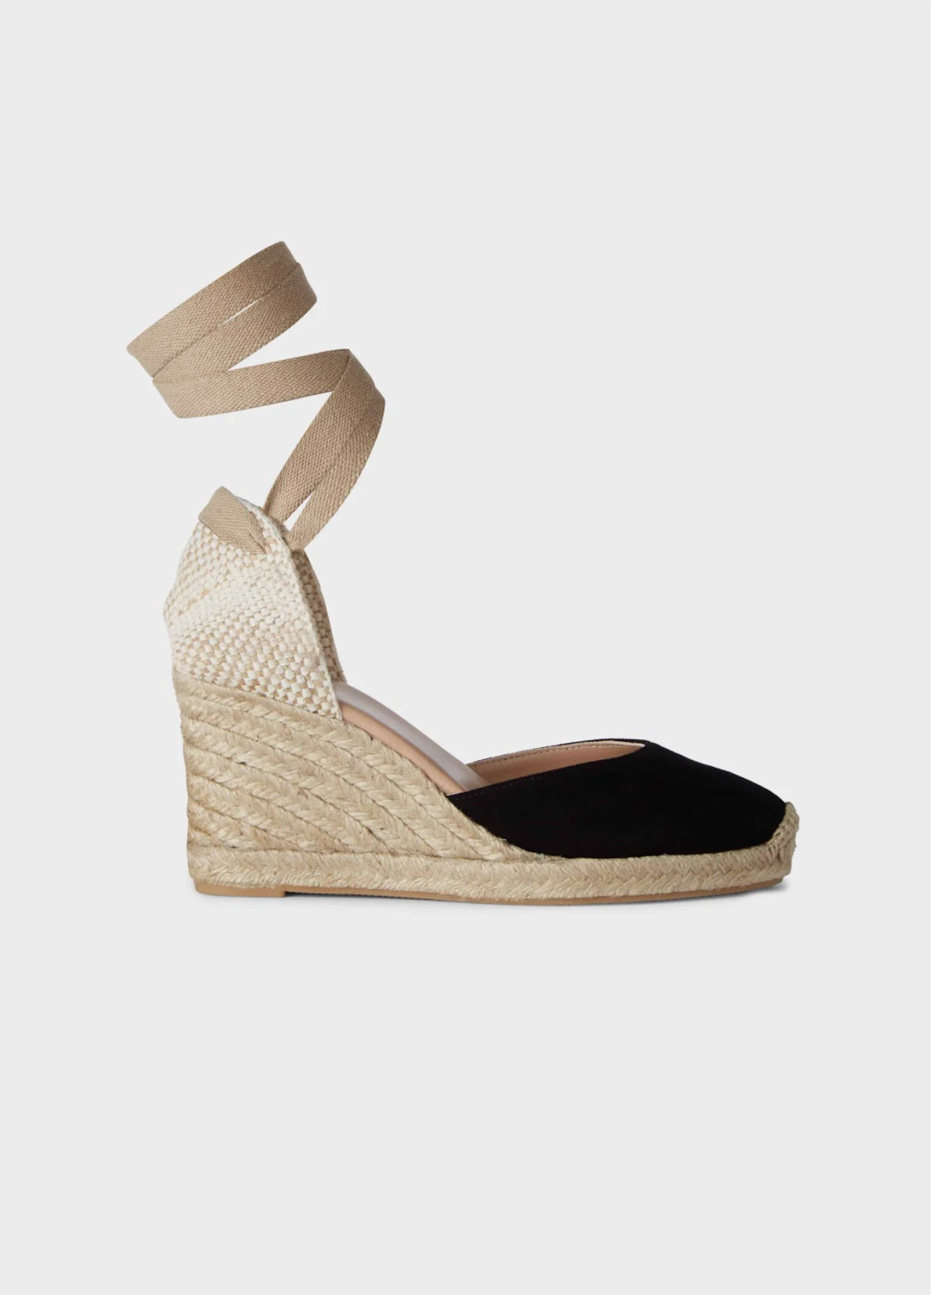 Black espadrille wedge with an ankle wrap design.